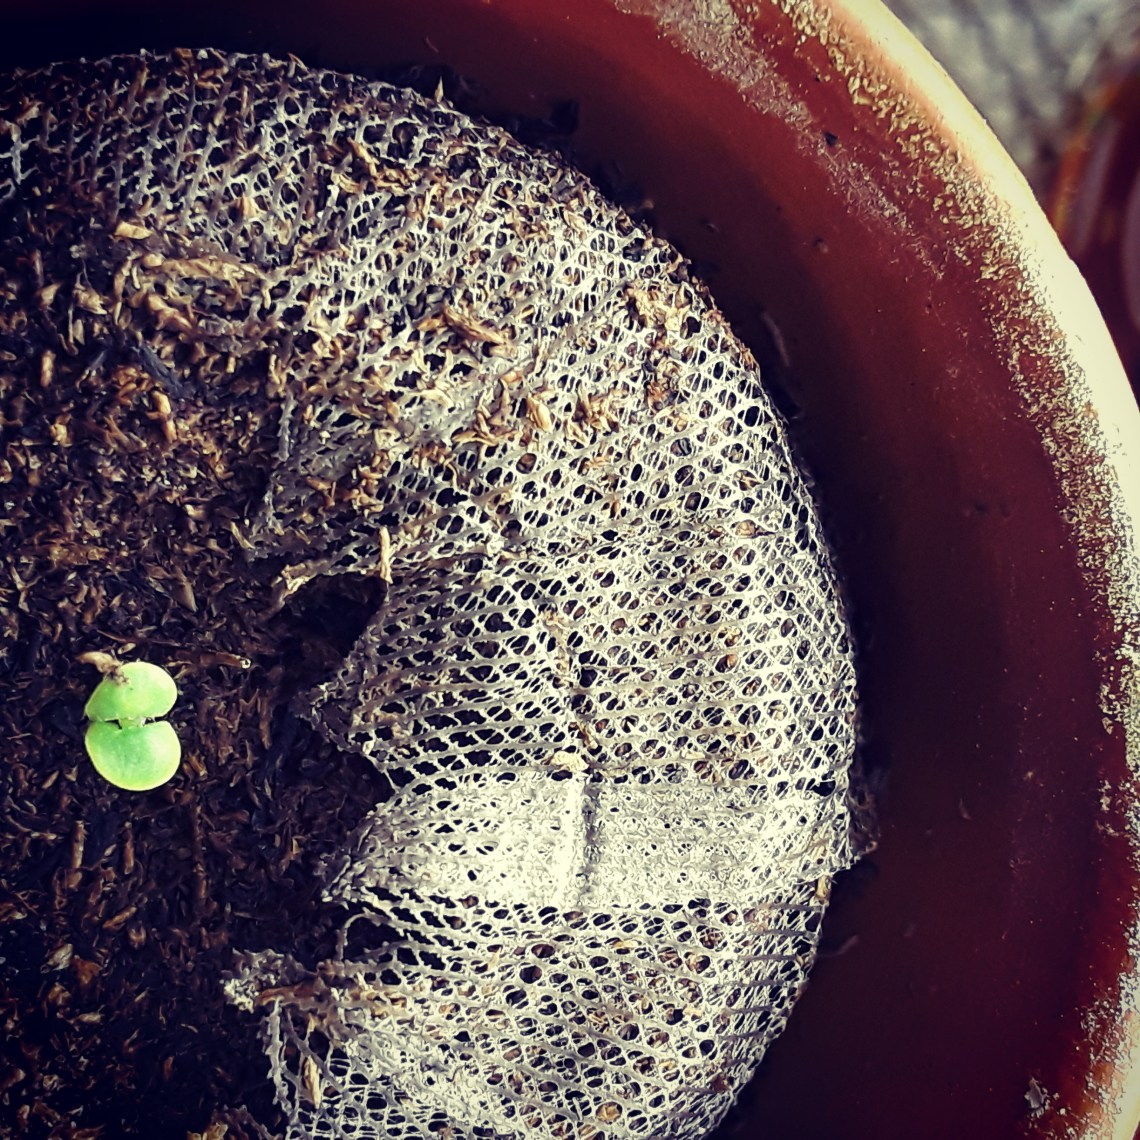 a basil seedling has escaped the seed coat and sent roots and a shoot through the soil